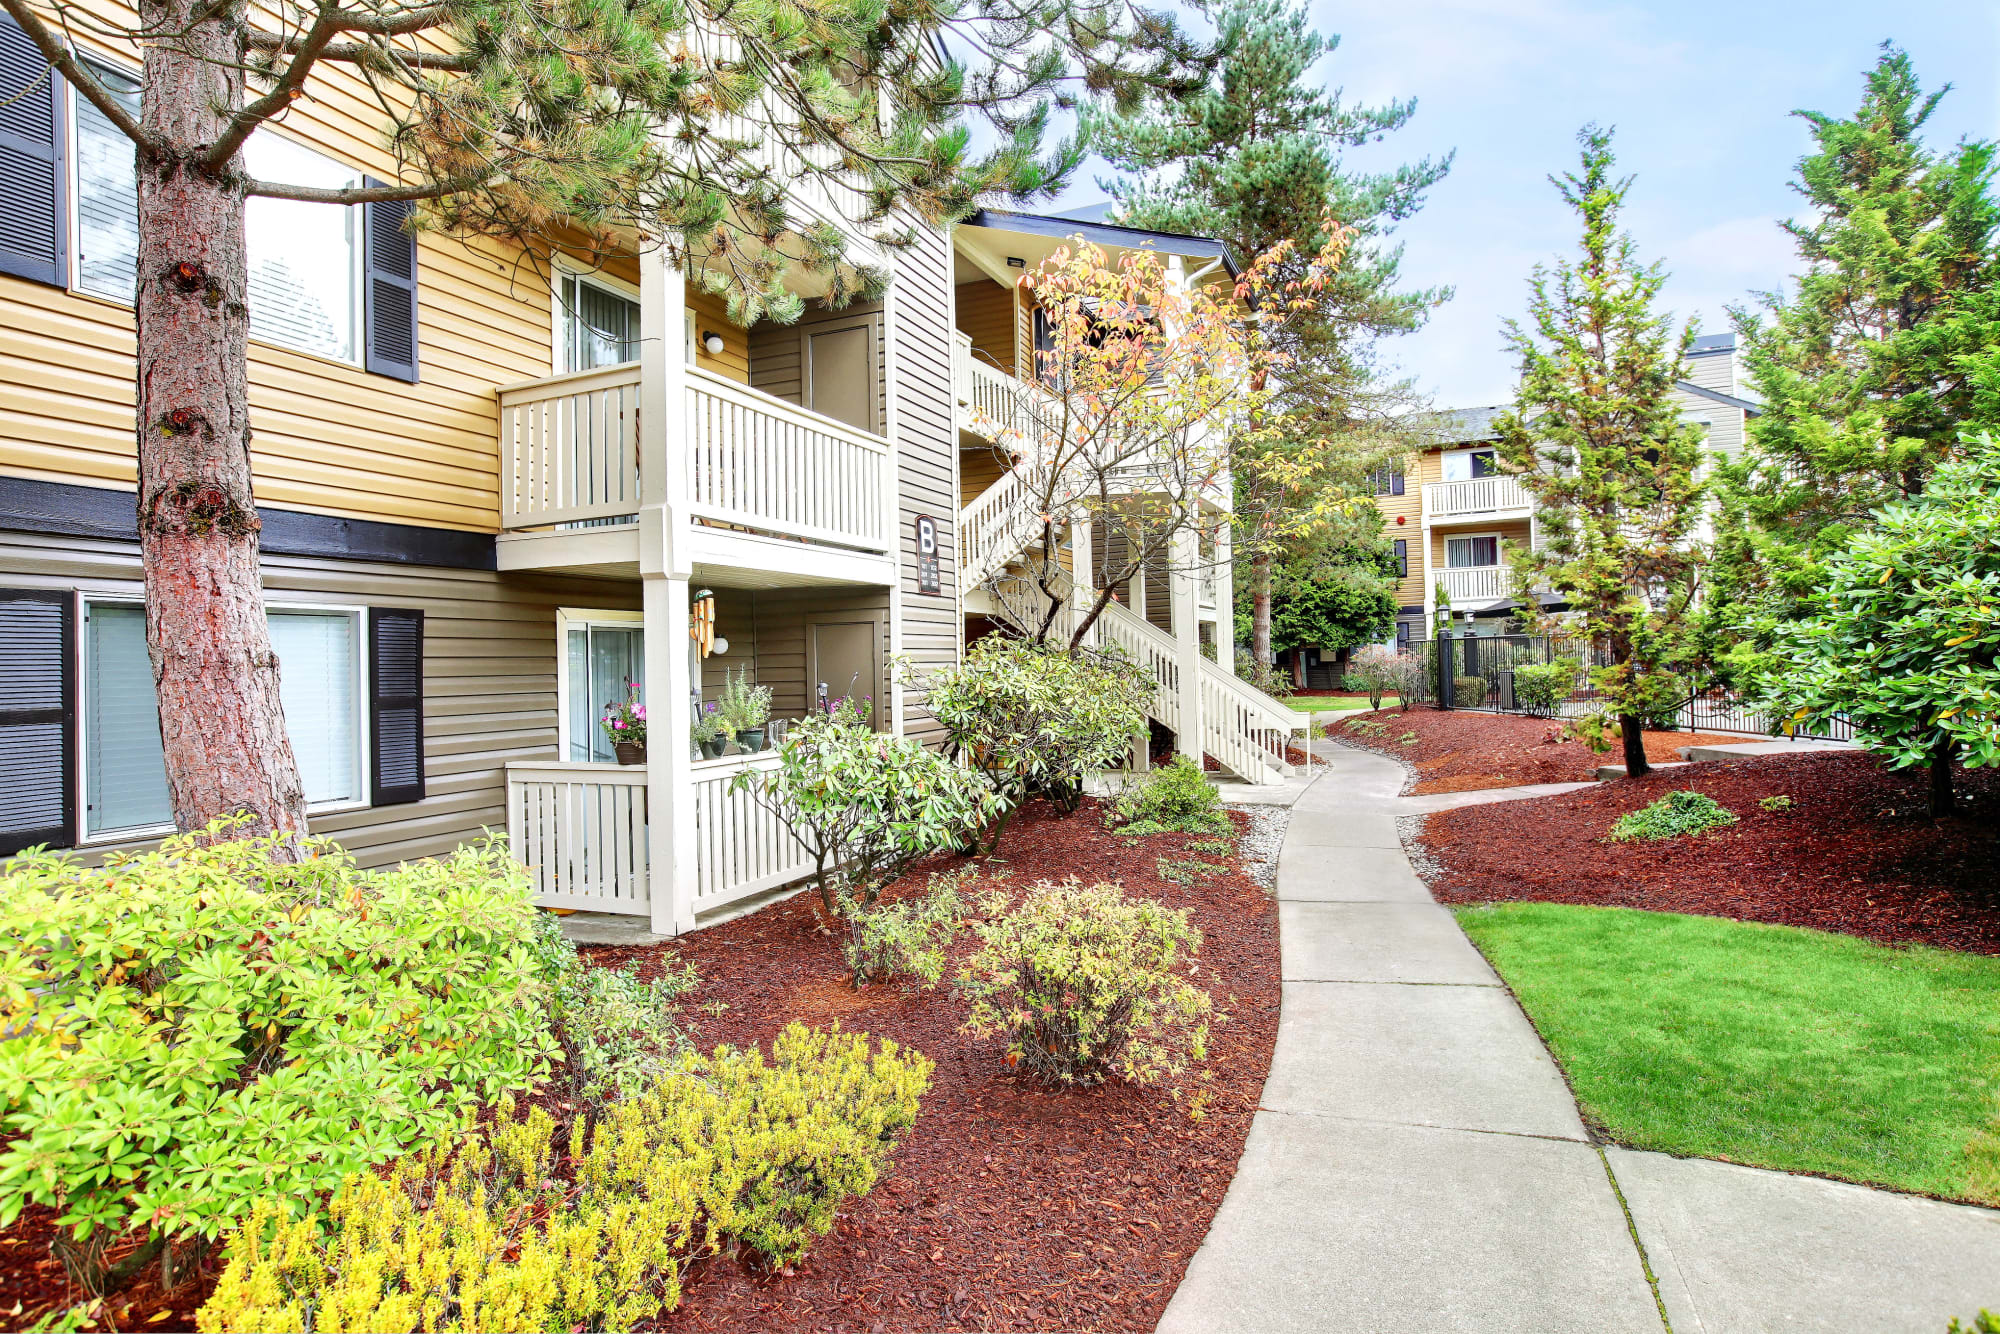 Exterior Buildings and beautifully landscaped walkway at Newport Crossing Apartments